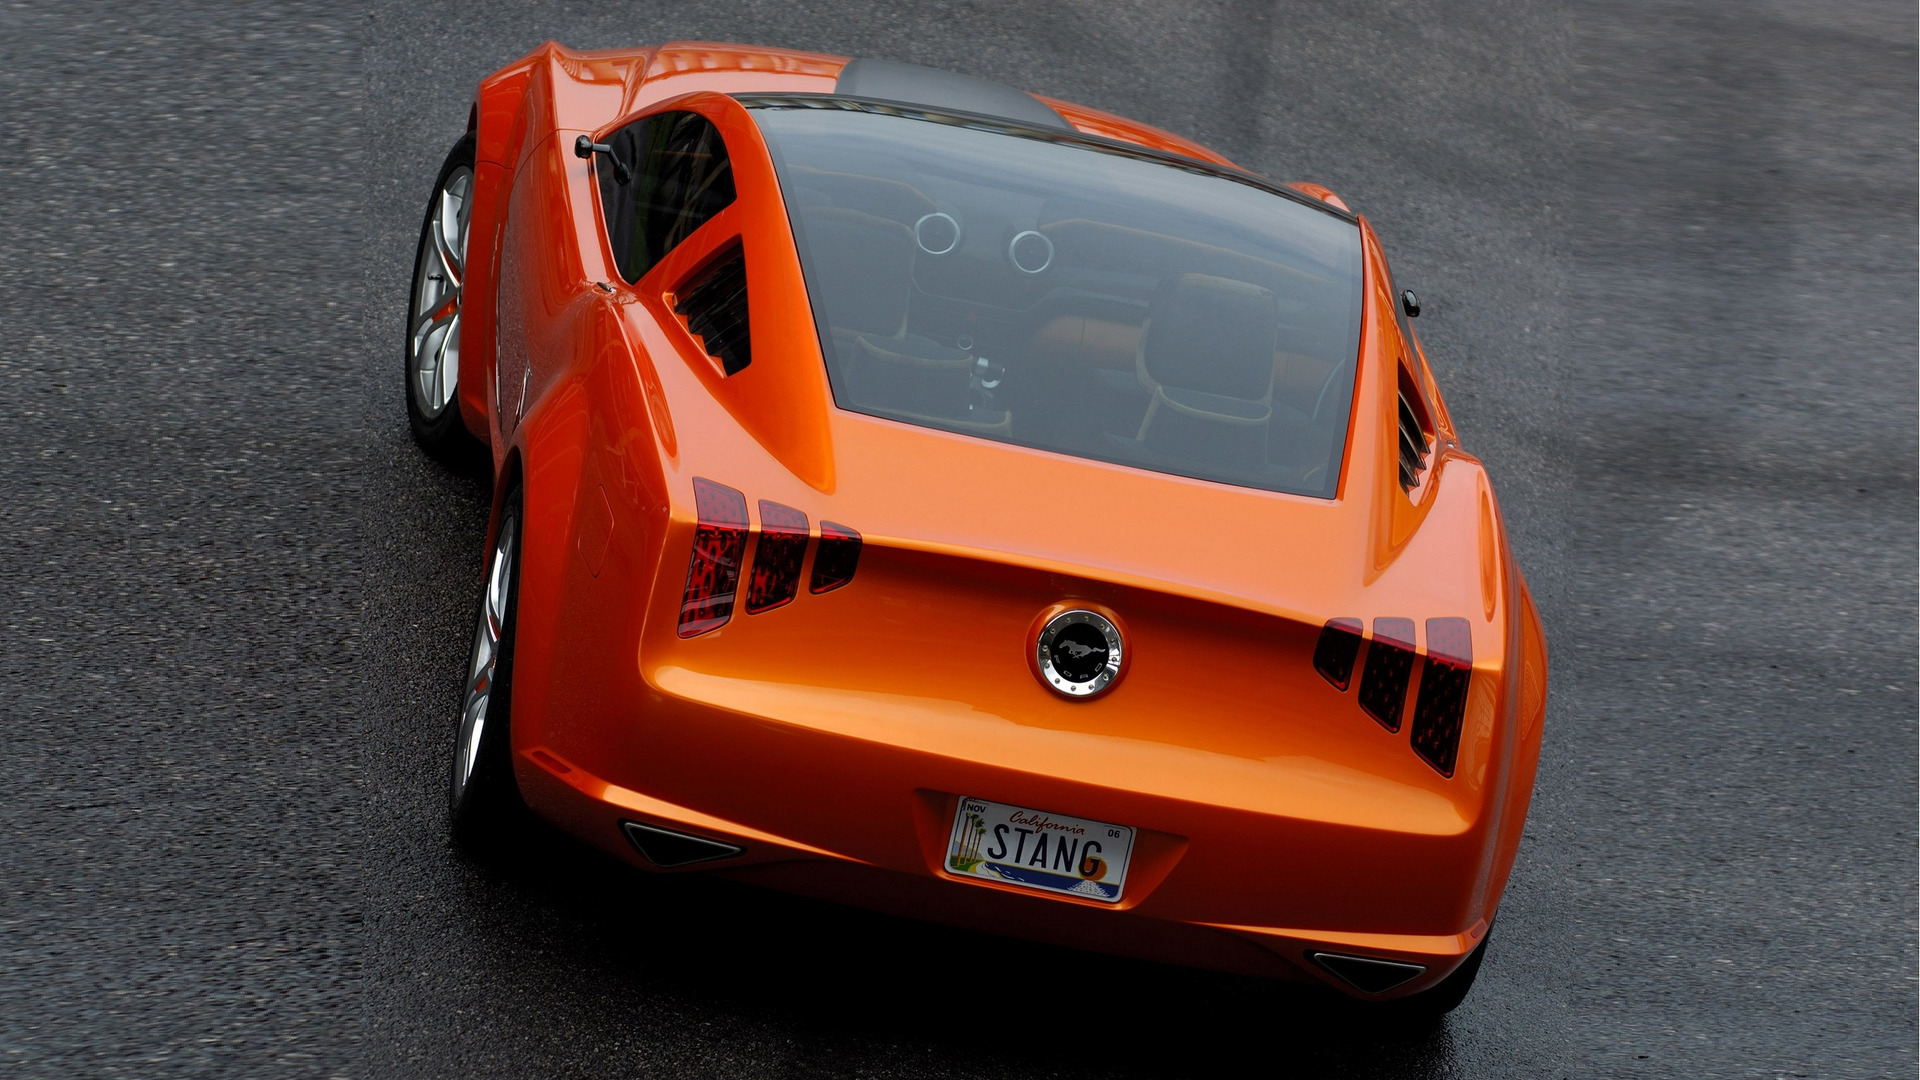 Ford Mustang Giugiaro concept: This one-of-a-kind Mustang by Giugiaro concept underscores Mustang's global appeal and celebrates the icon's heritage of performance. Powered by Ford Racing technologies, this fully drivable special Italian style design reflects the lasting allure of America's favorite muscle car.